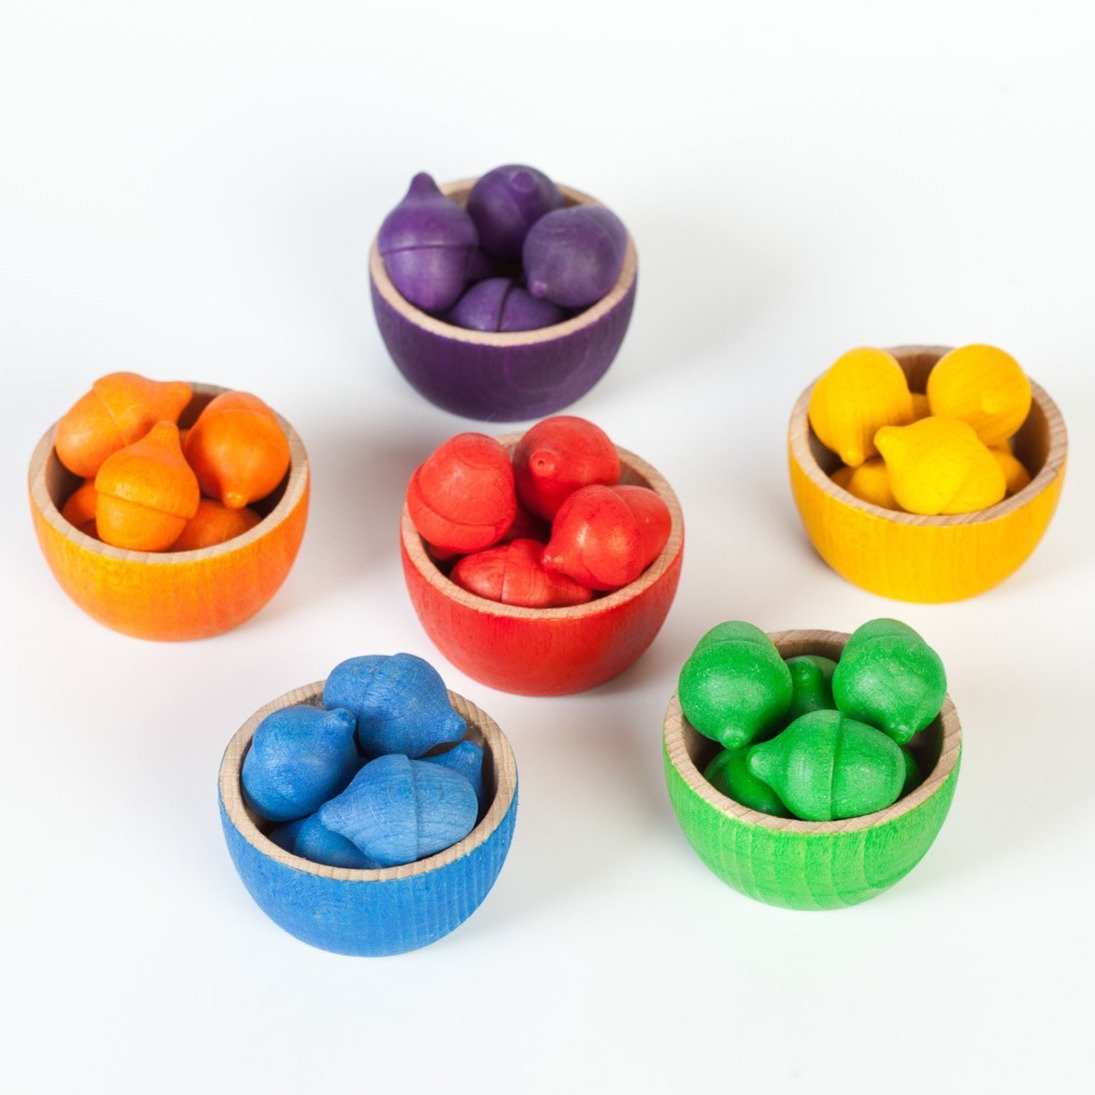 Grapat Colourful Wooden Bowls and Acorns Set of 6 Grapat Toys at Little Earth Nest Eco Shop